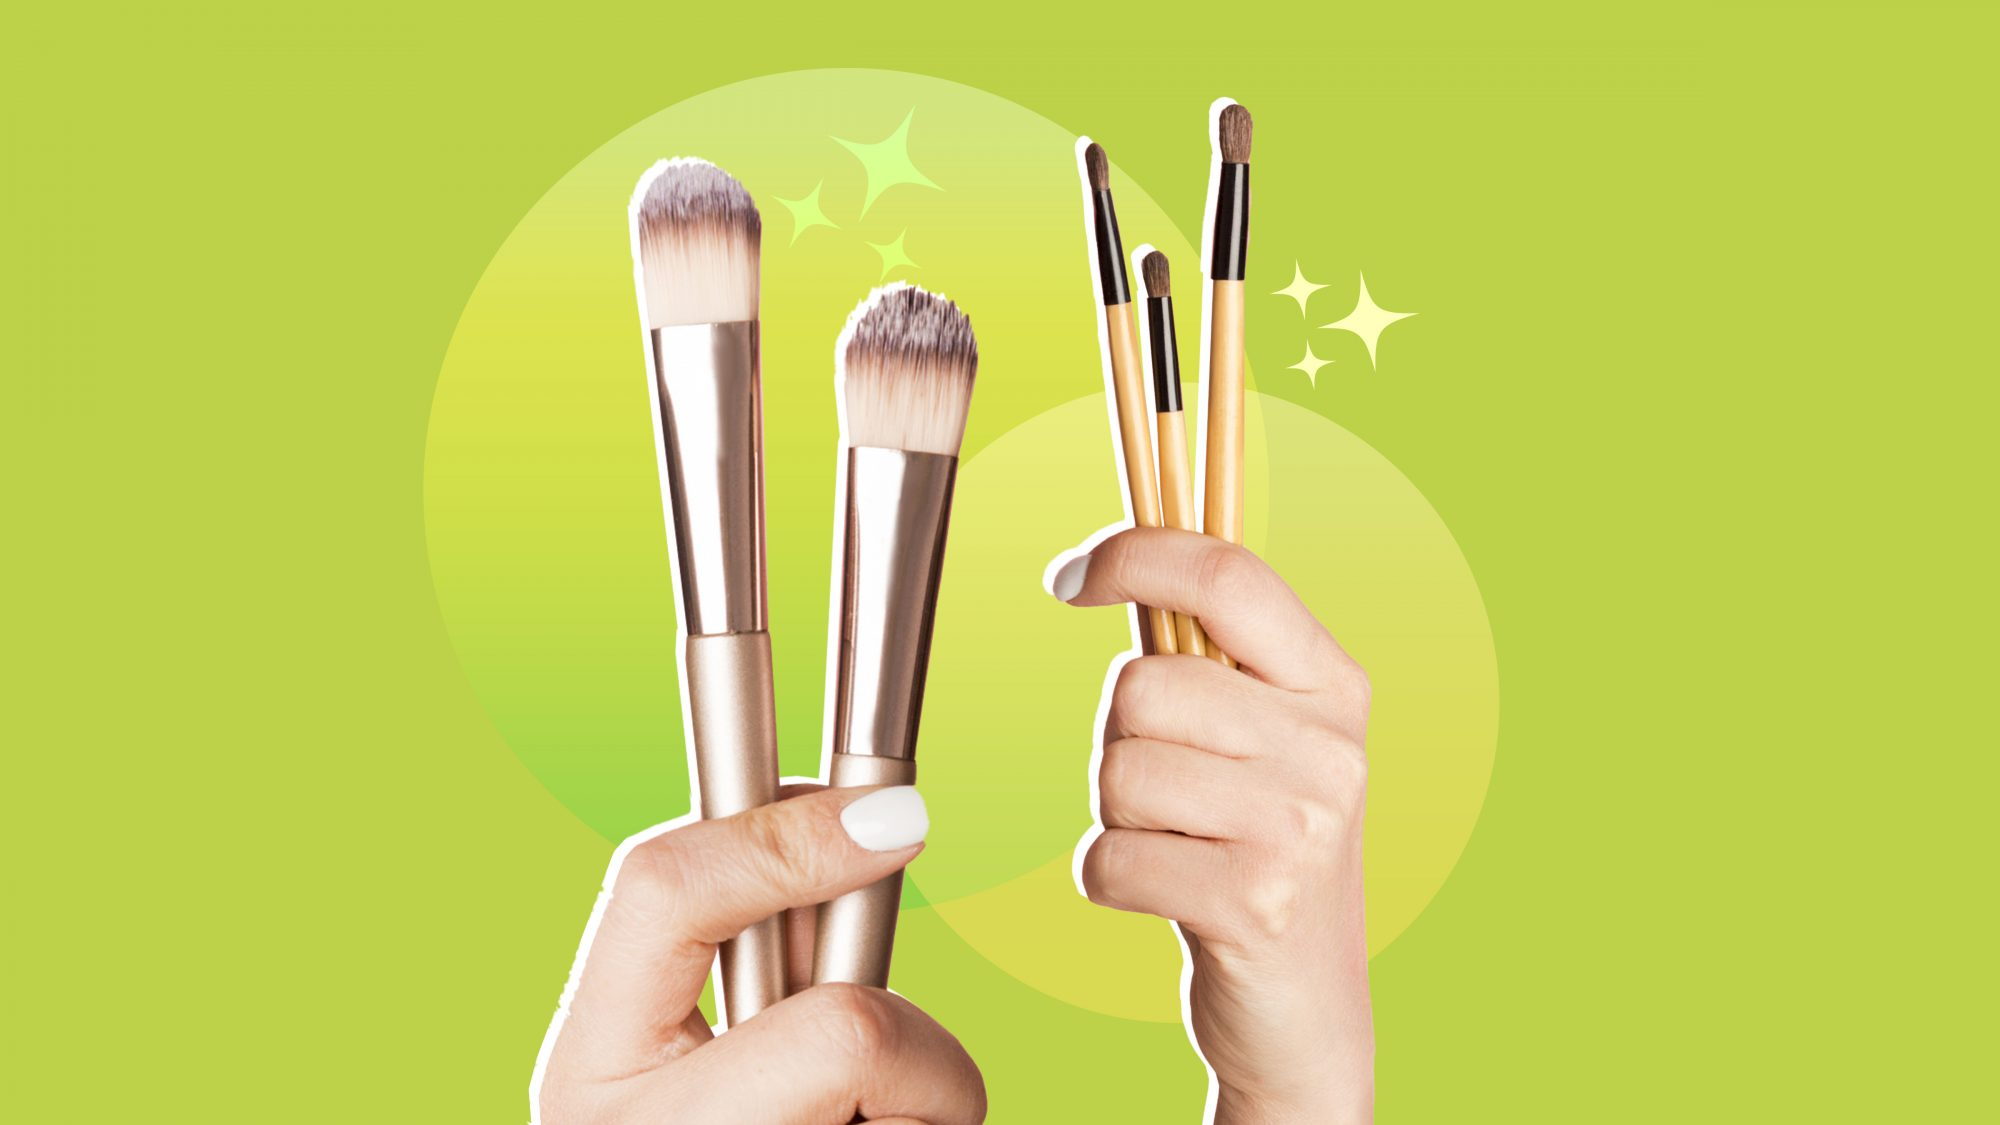 How-to-Clean-Your-Makeup-Brushes-And-Why-You-Need-to-Do-It-AdobeStock_343531982